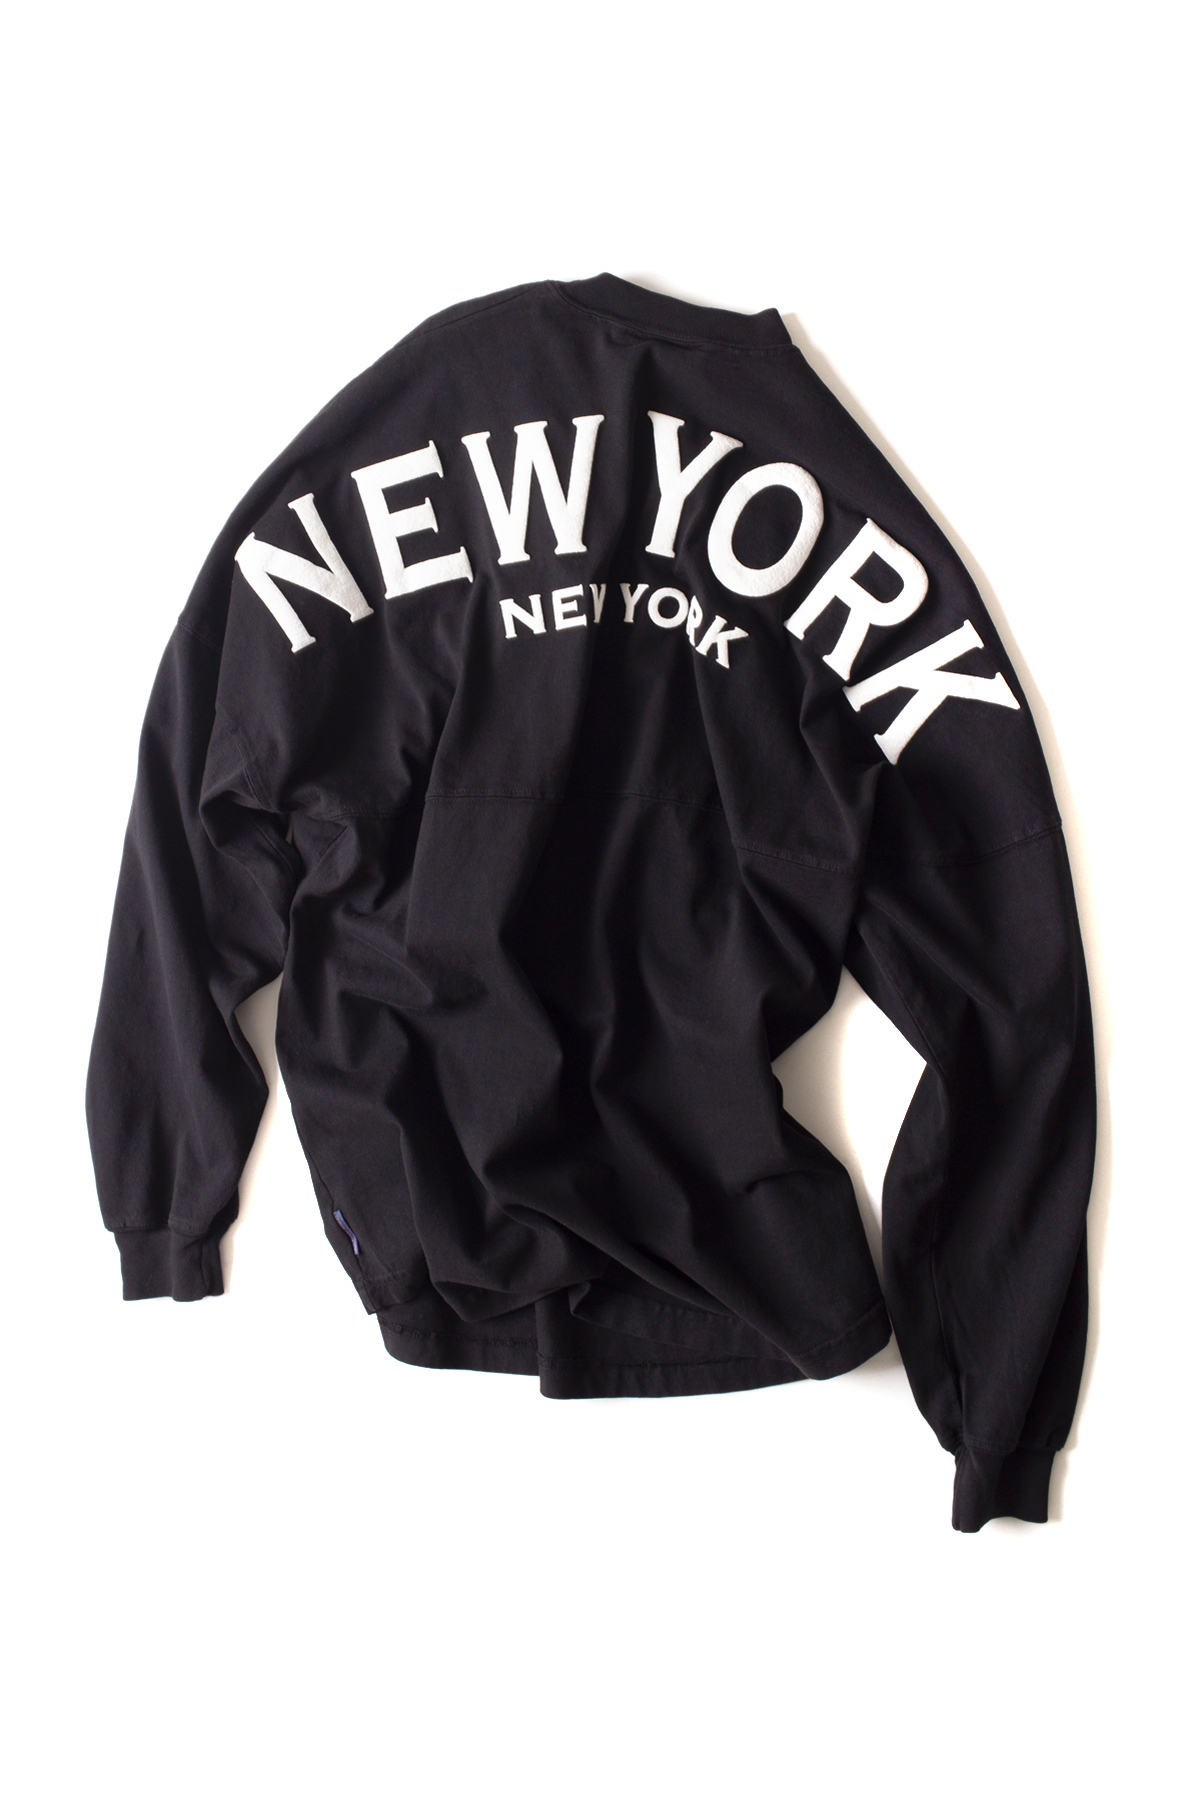 Spirit Jersey : Original Crew Neck Spirit Jersey (New York / Black)